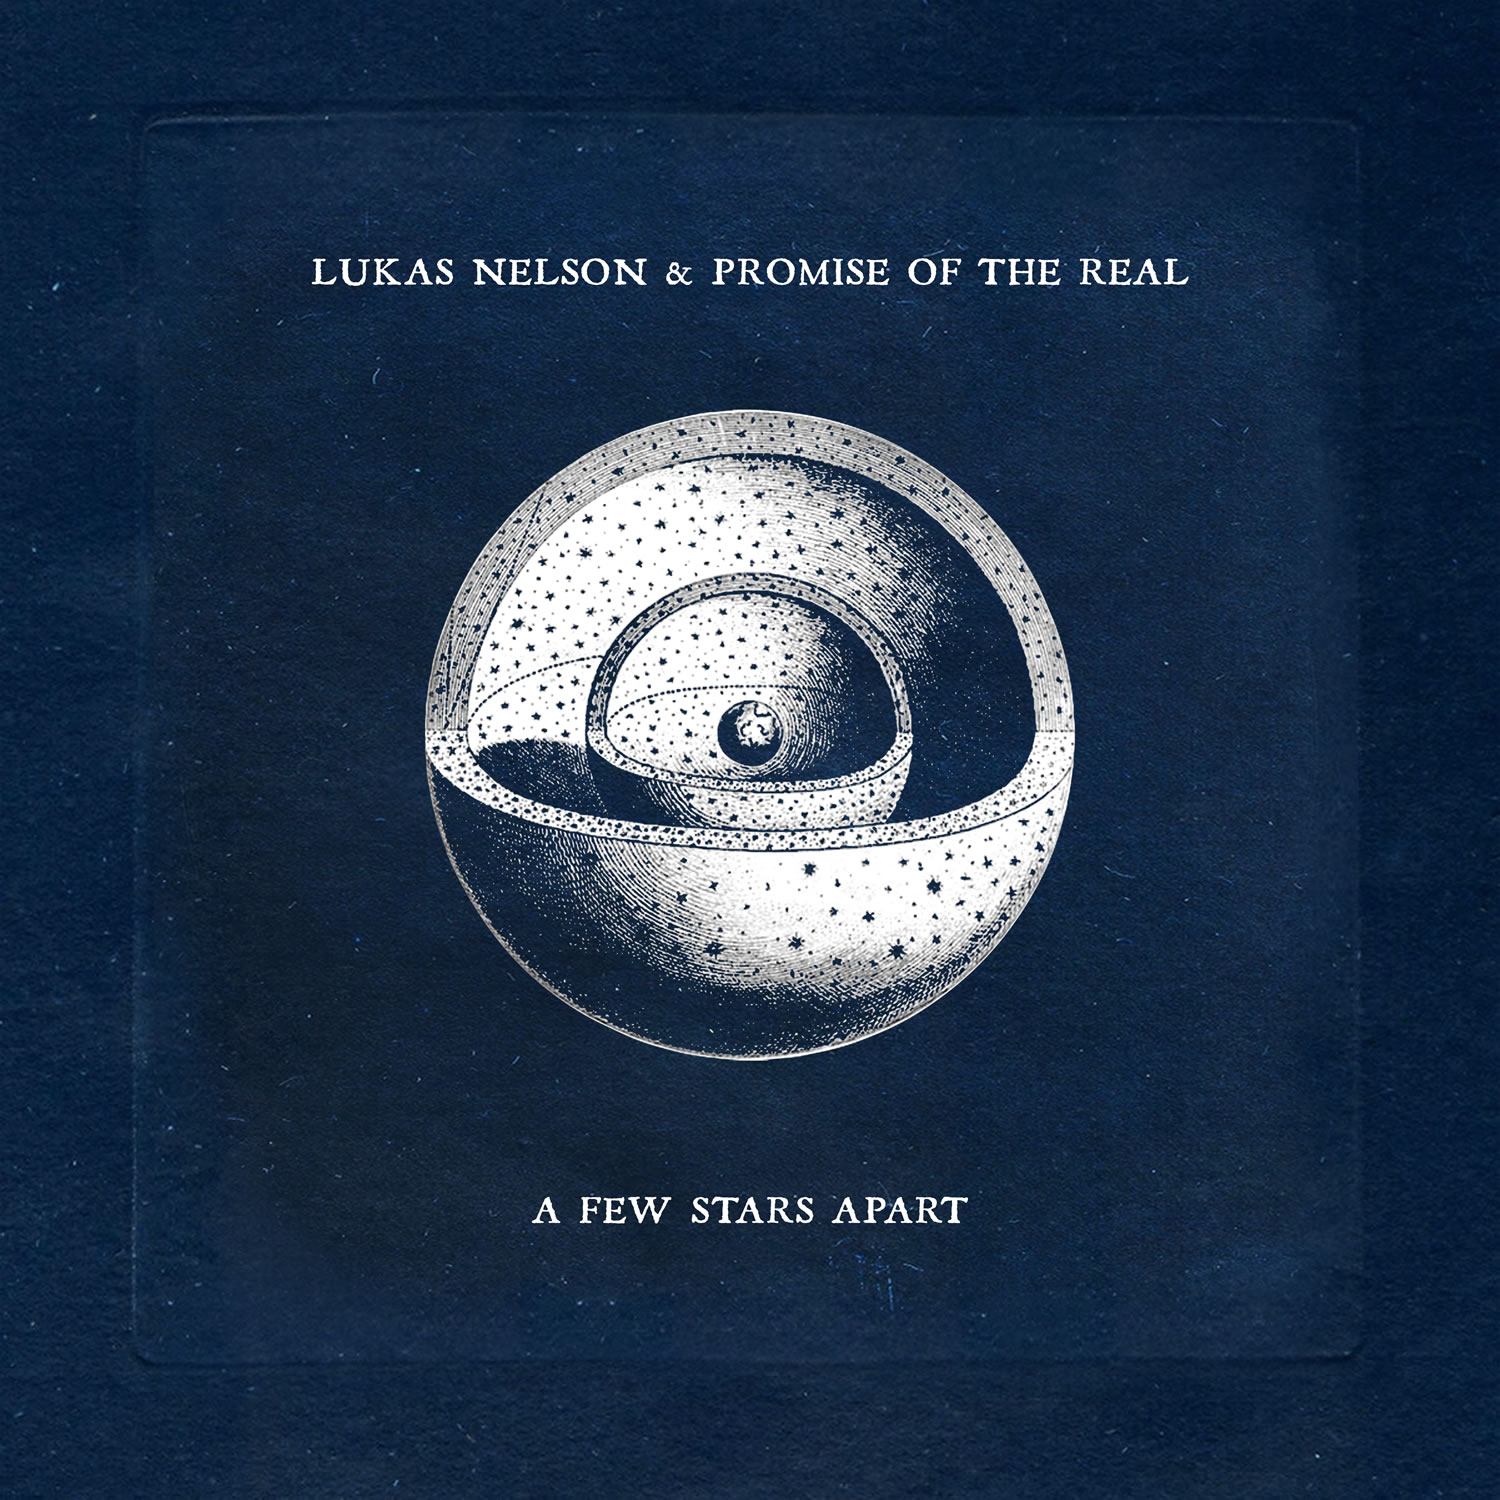 LUKAS NELSON & PROMISE OF THE REAL - Página 4 _AFSA_ALBUM%20COVER%20FINALFINAL-1500